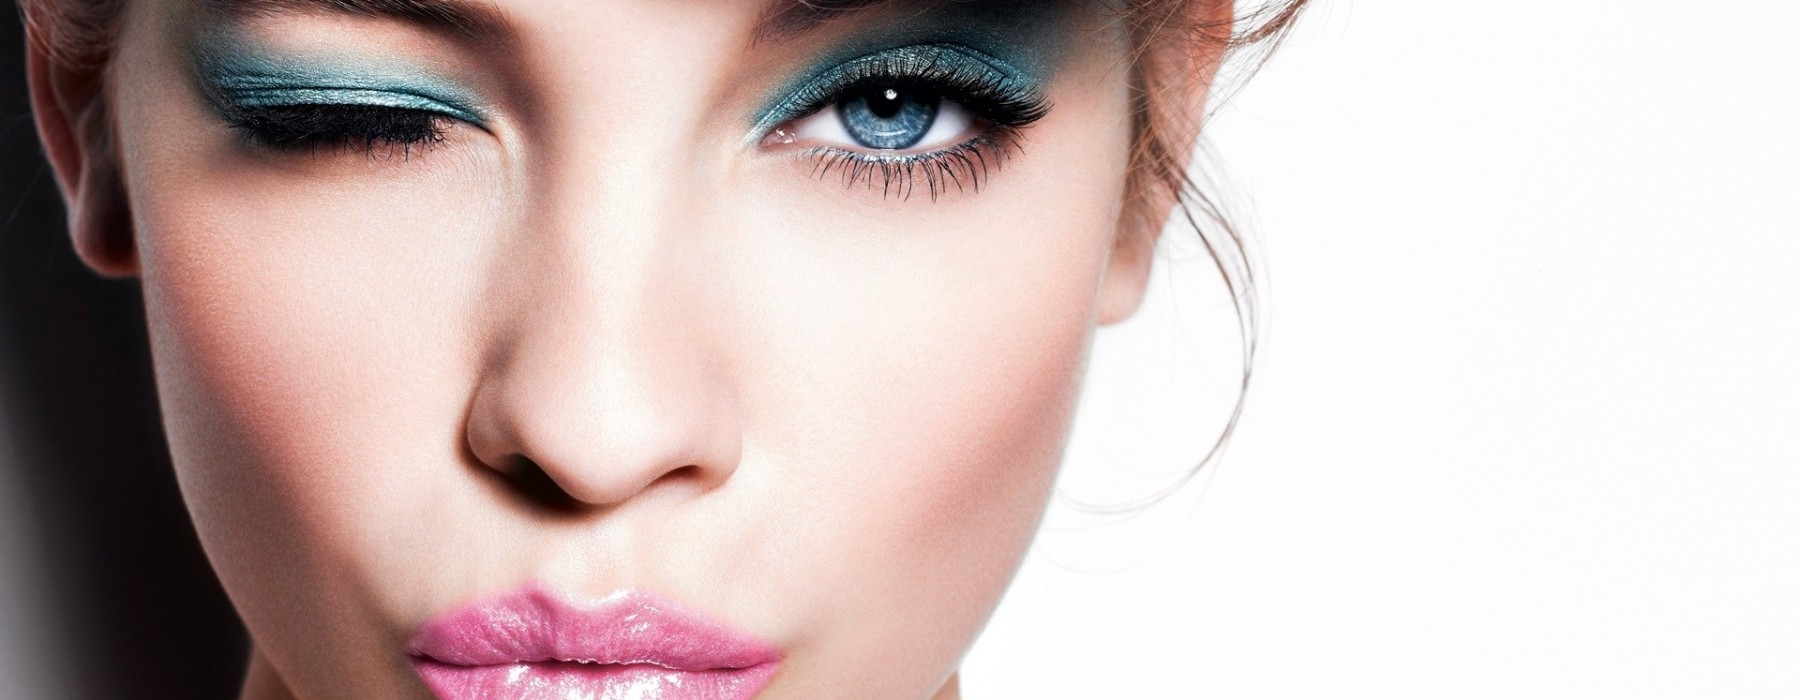 How to use makeup to look much younger